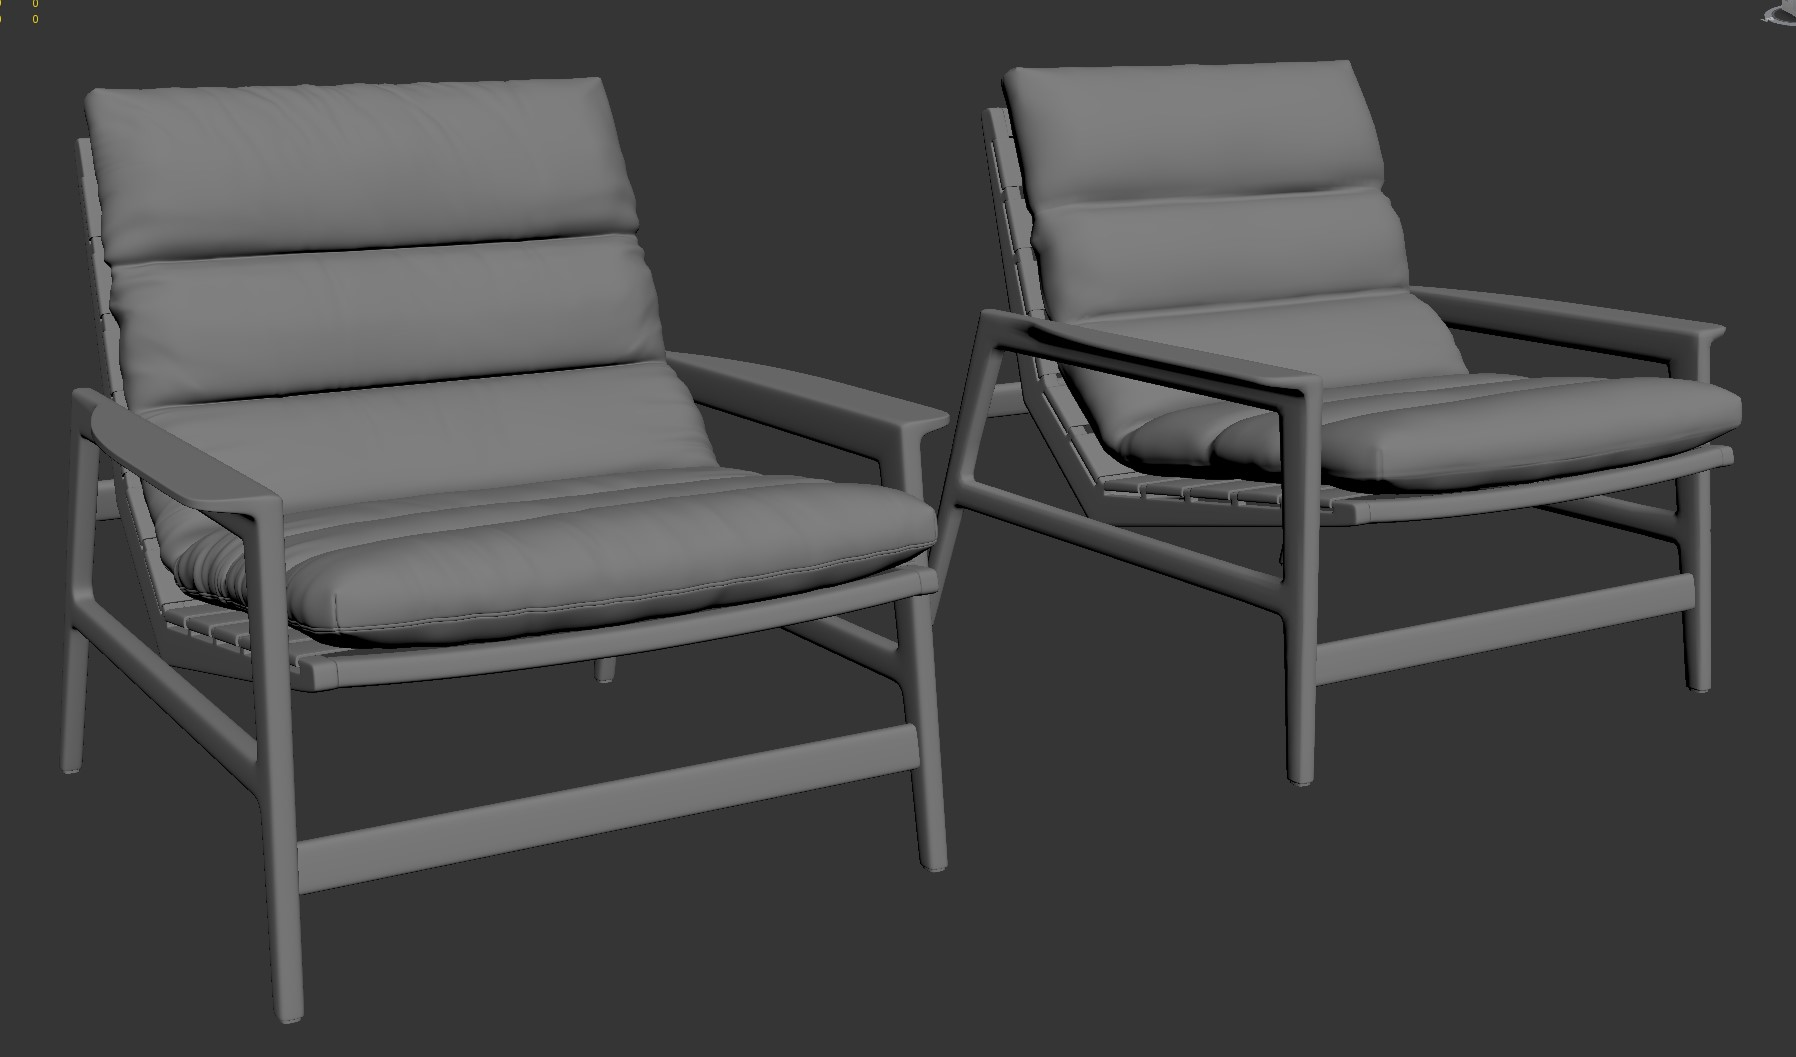 After-Product 3d modeling